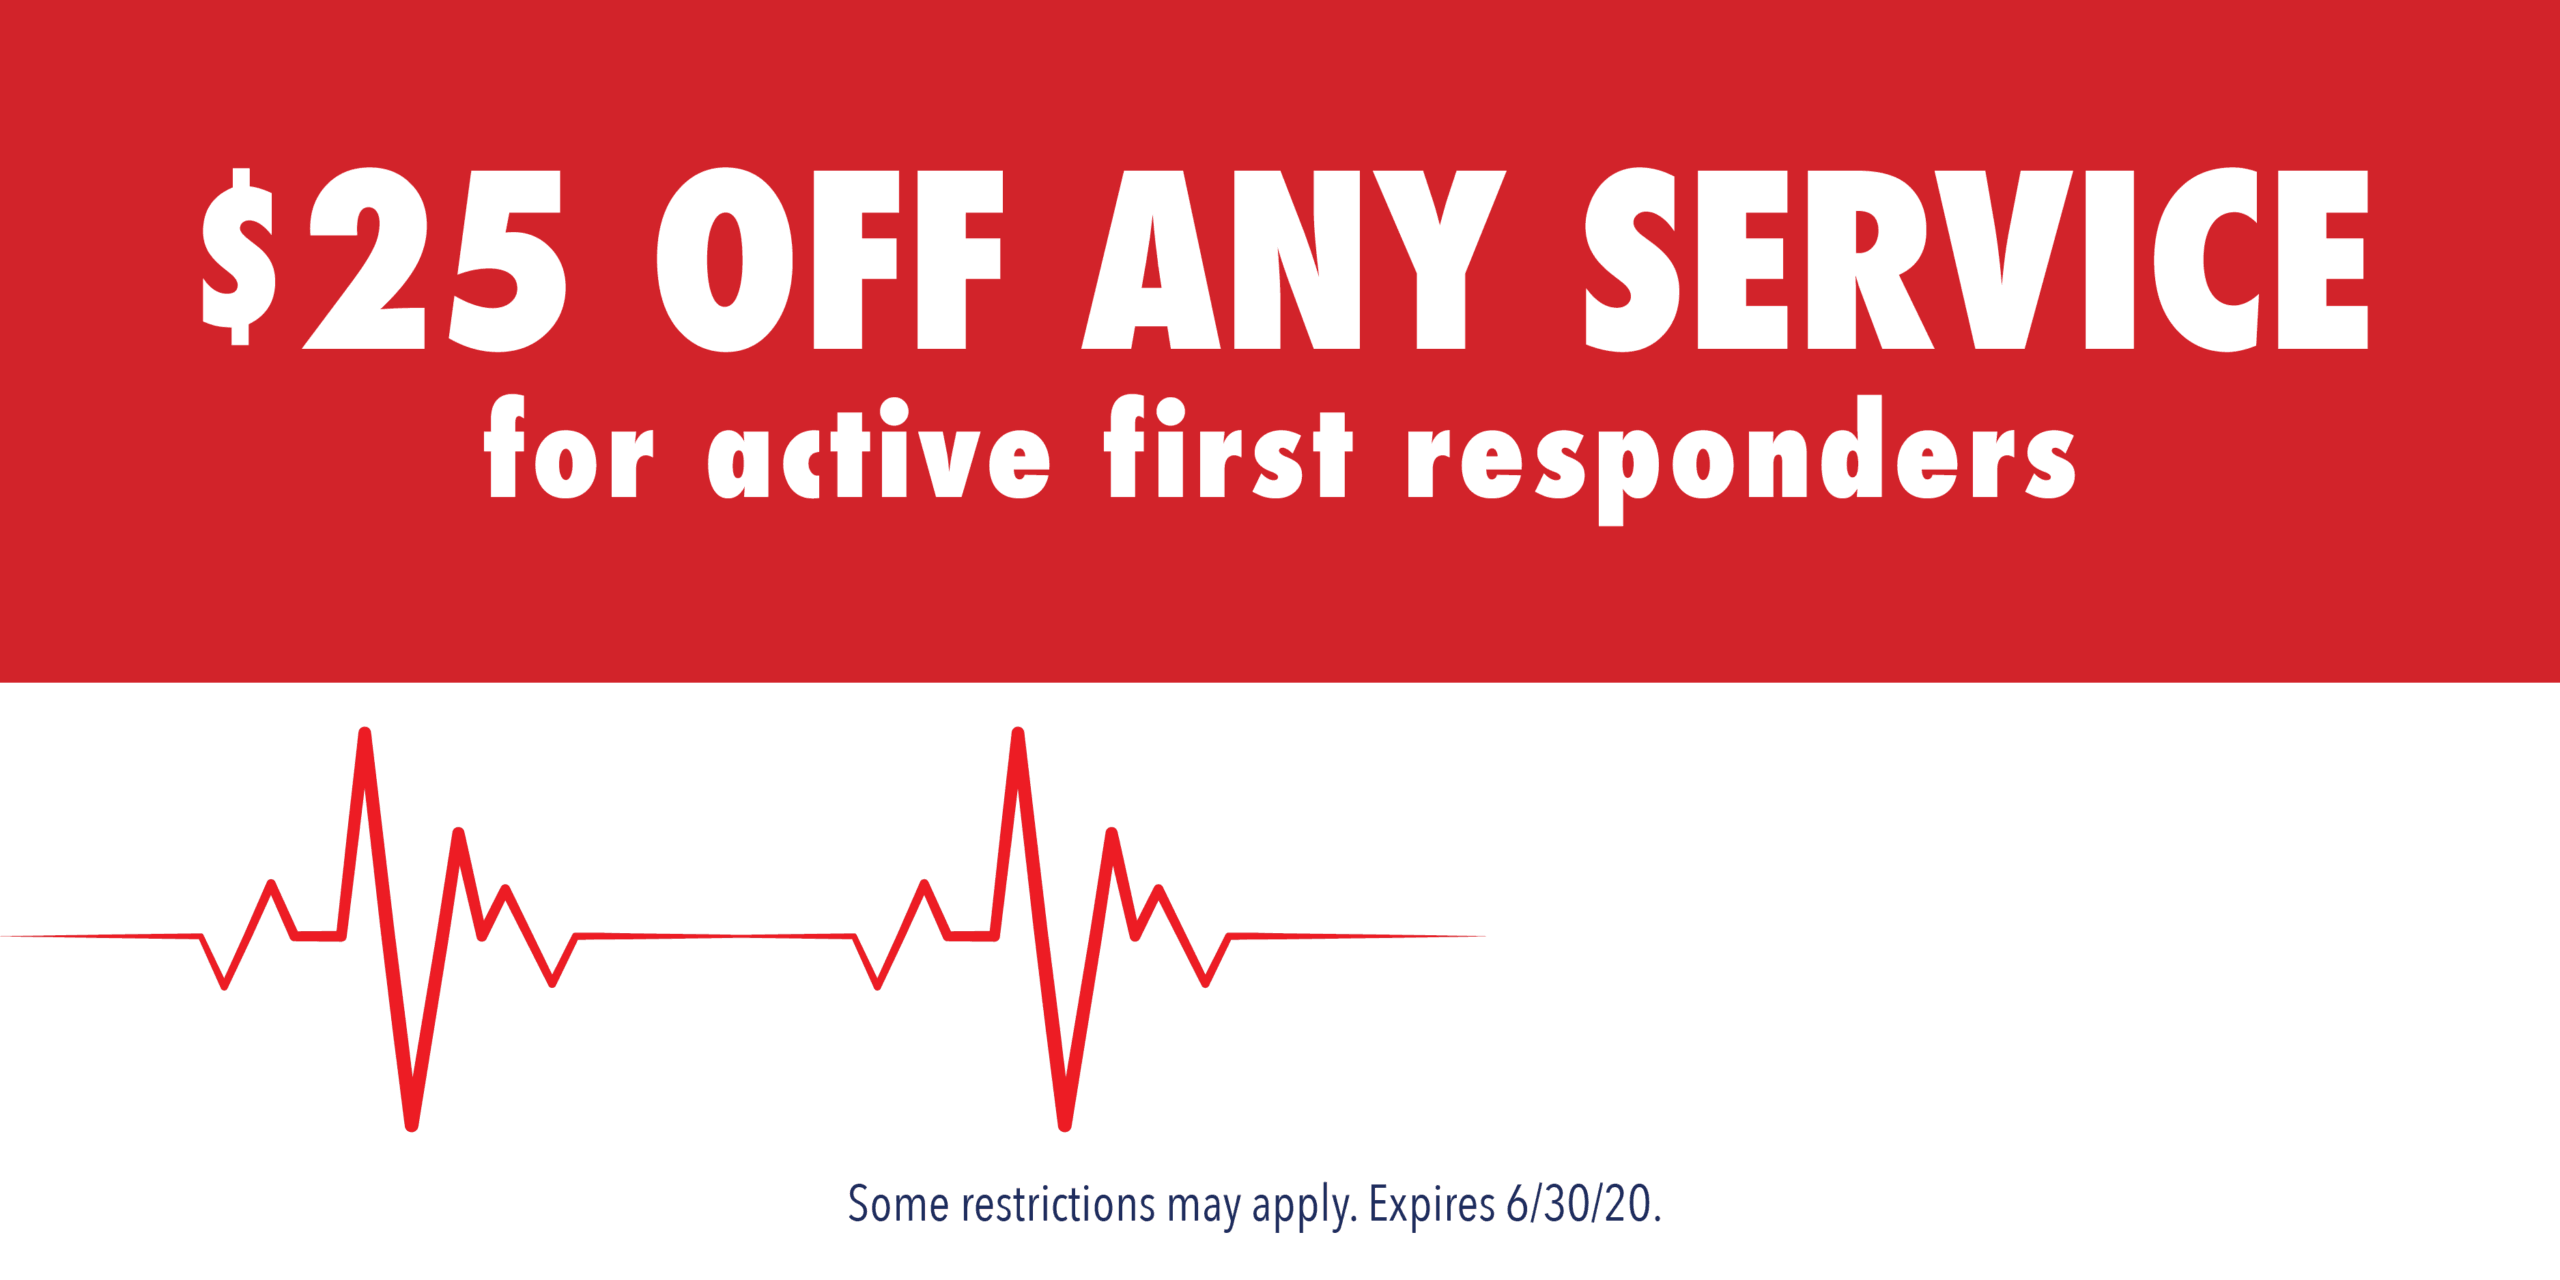 $25 off coupon for first responders from Jack's Refrigeration, heating and cooling service.